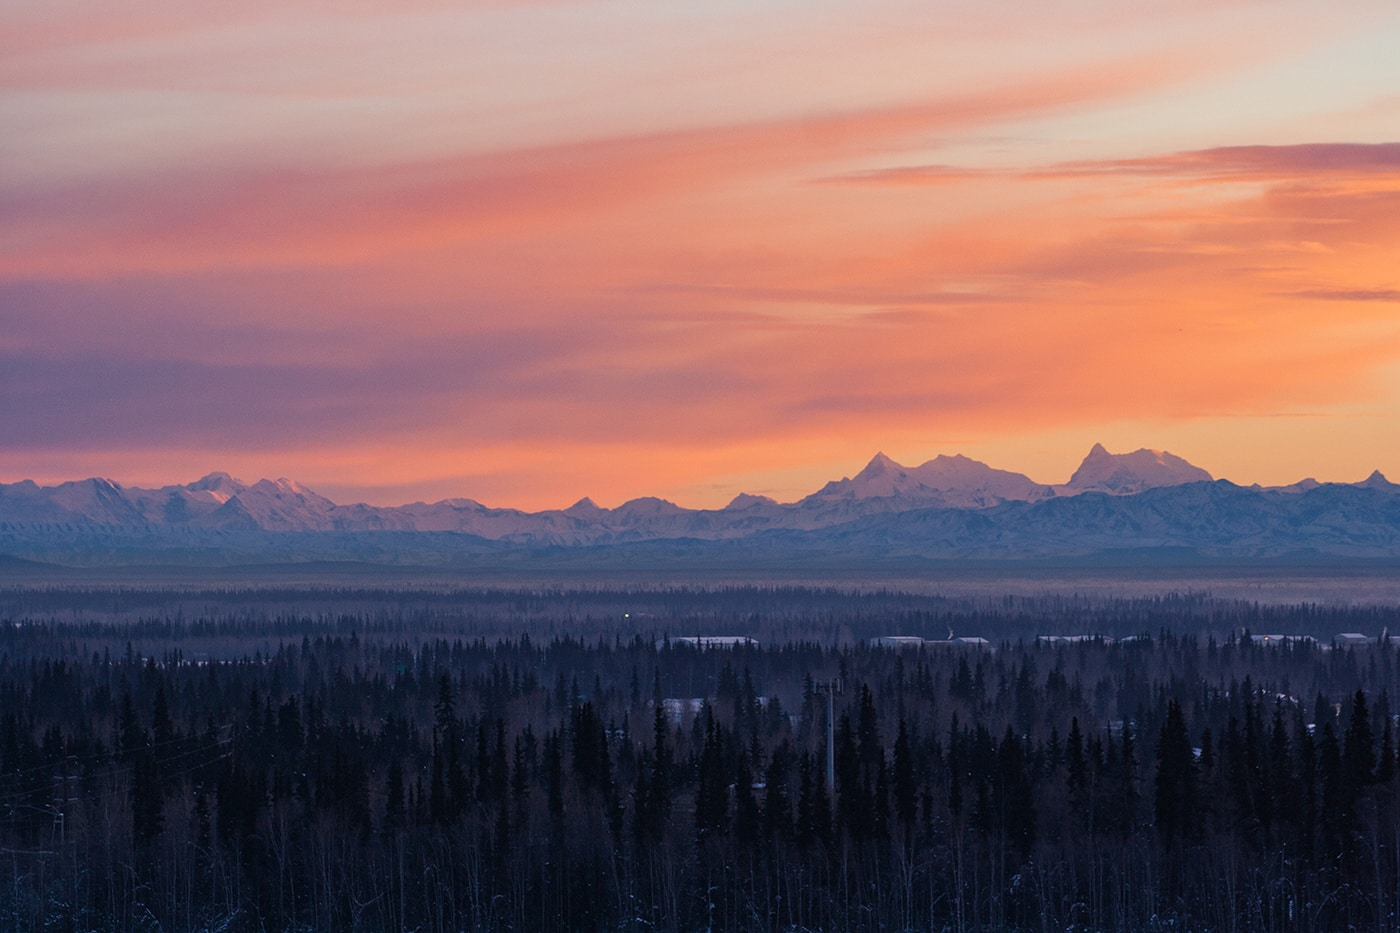 Orange sky and clouds with purple mountains in the background in Alaska.